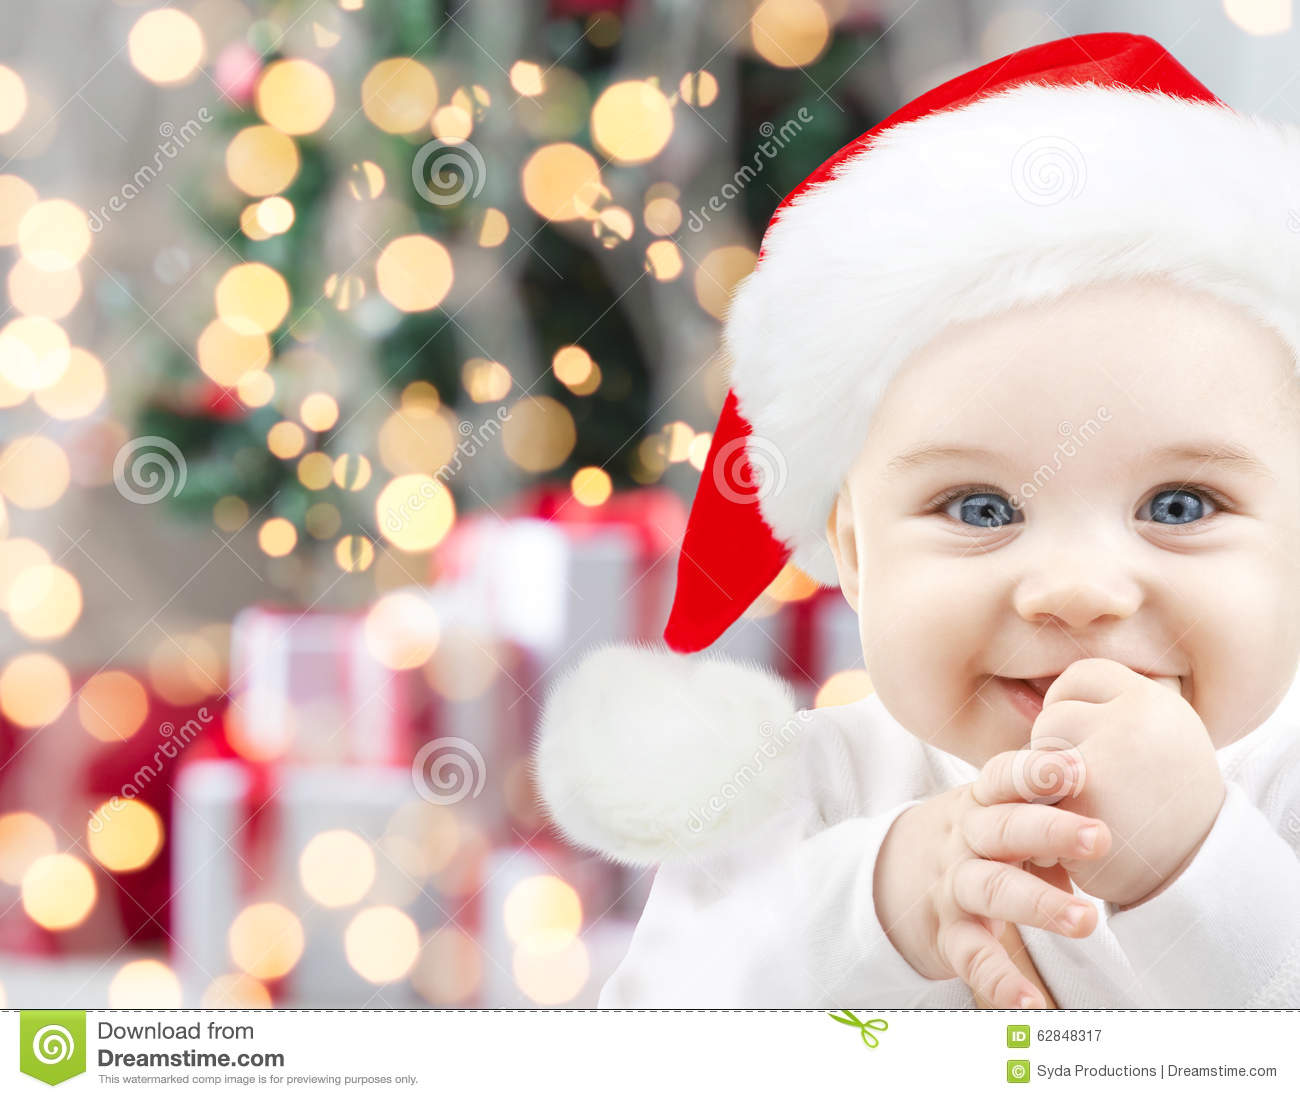 Happy Baby In Santa Hat Over Christmas Lights Stock Image